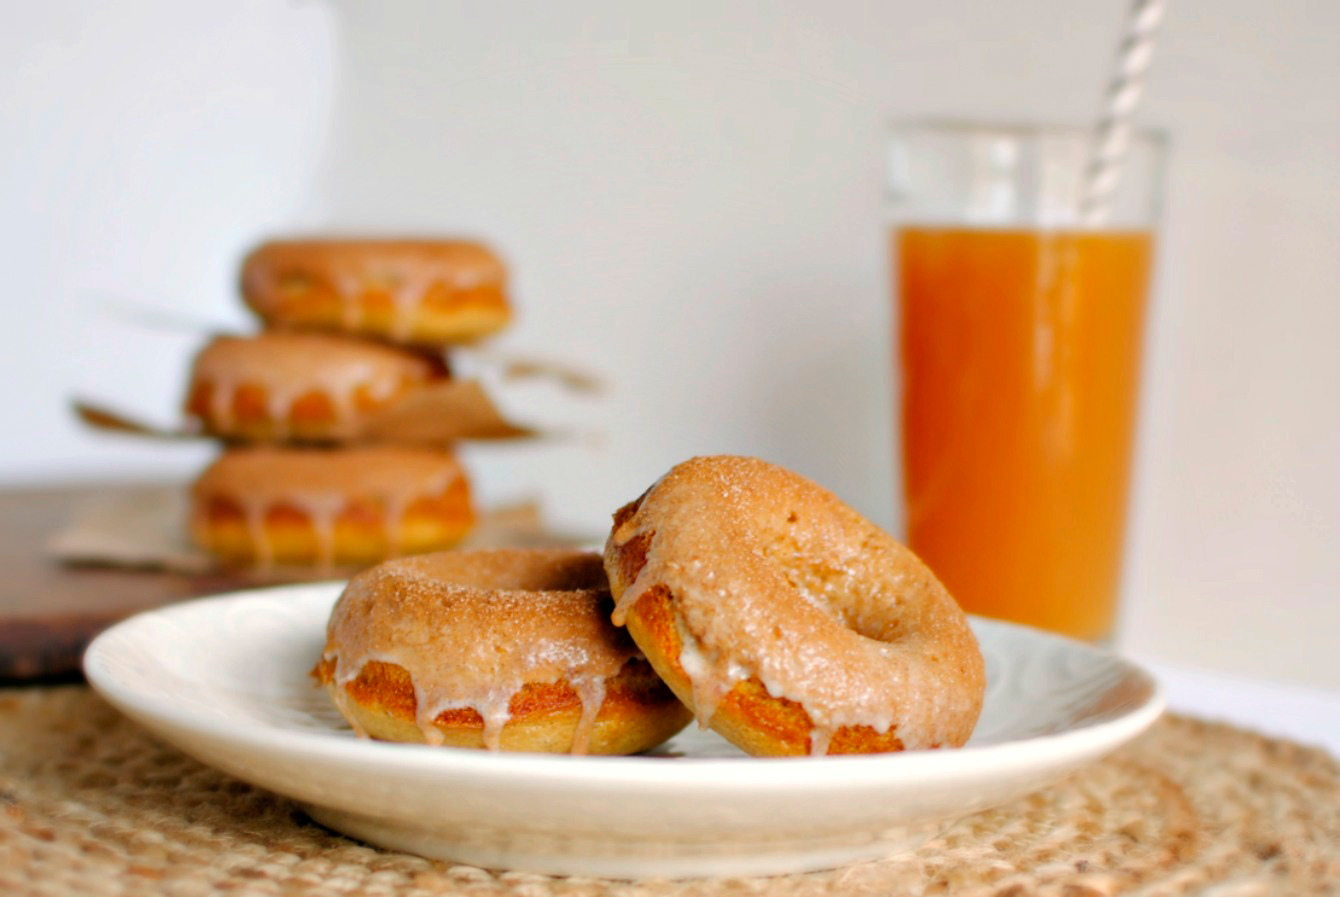 Tasty Kitchen Blog: Apple Cider Donuts. Guest post by Laurie of Simply Scratch, recipe submitted by TK member Aimee of Shugary Sweets.